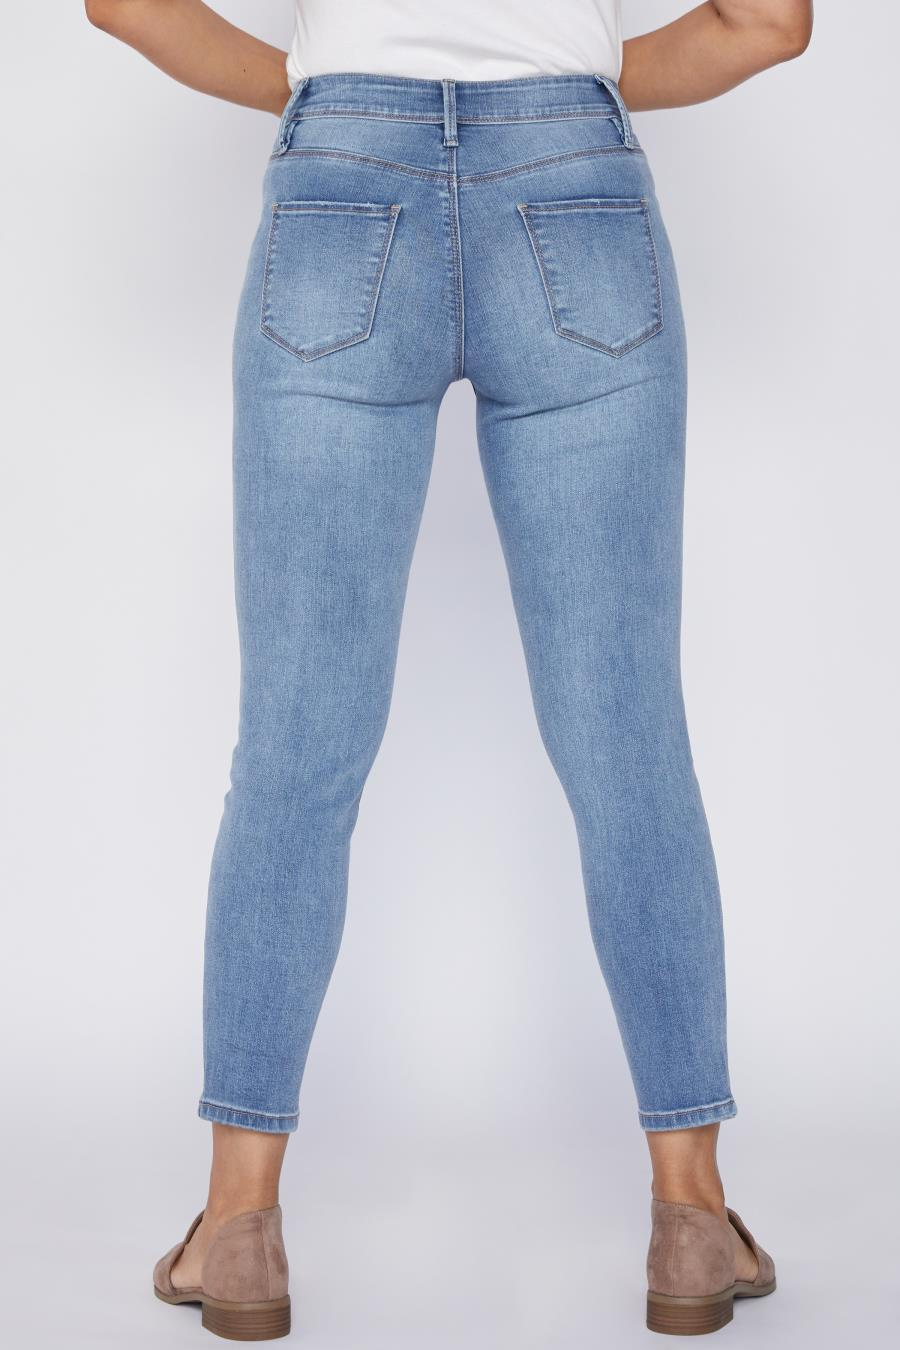 Women Petite Hide Your Muffin Top Skinny Jean Made With Recycled Fibers